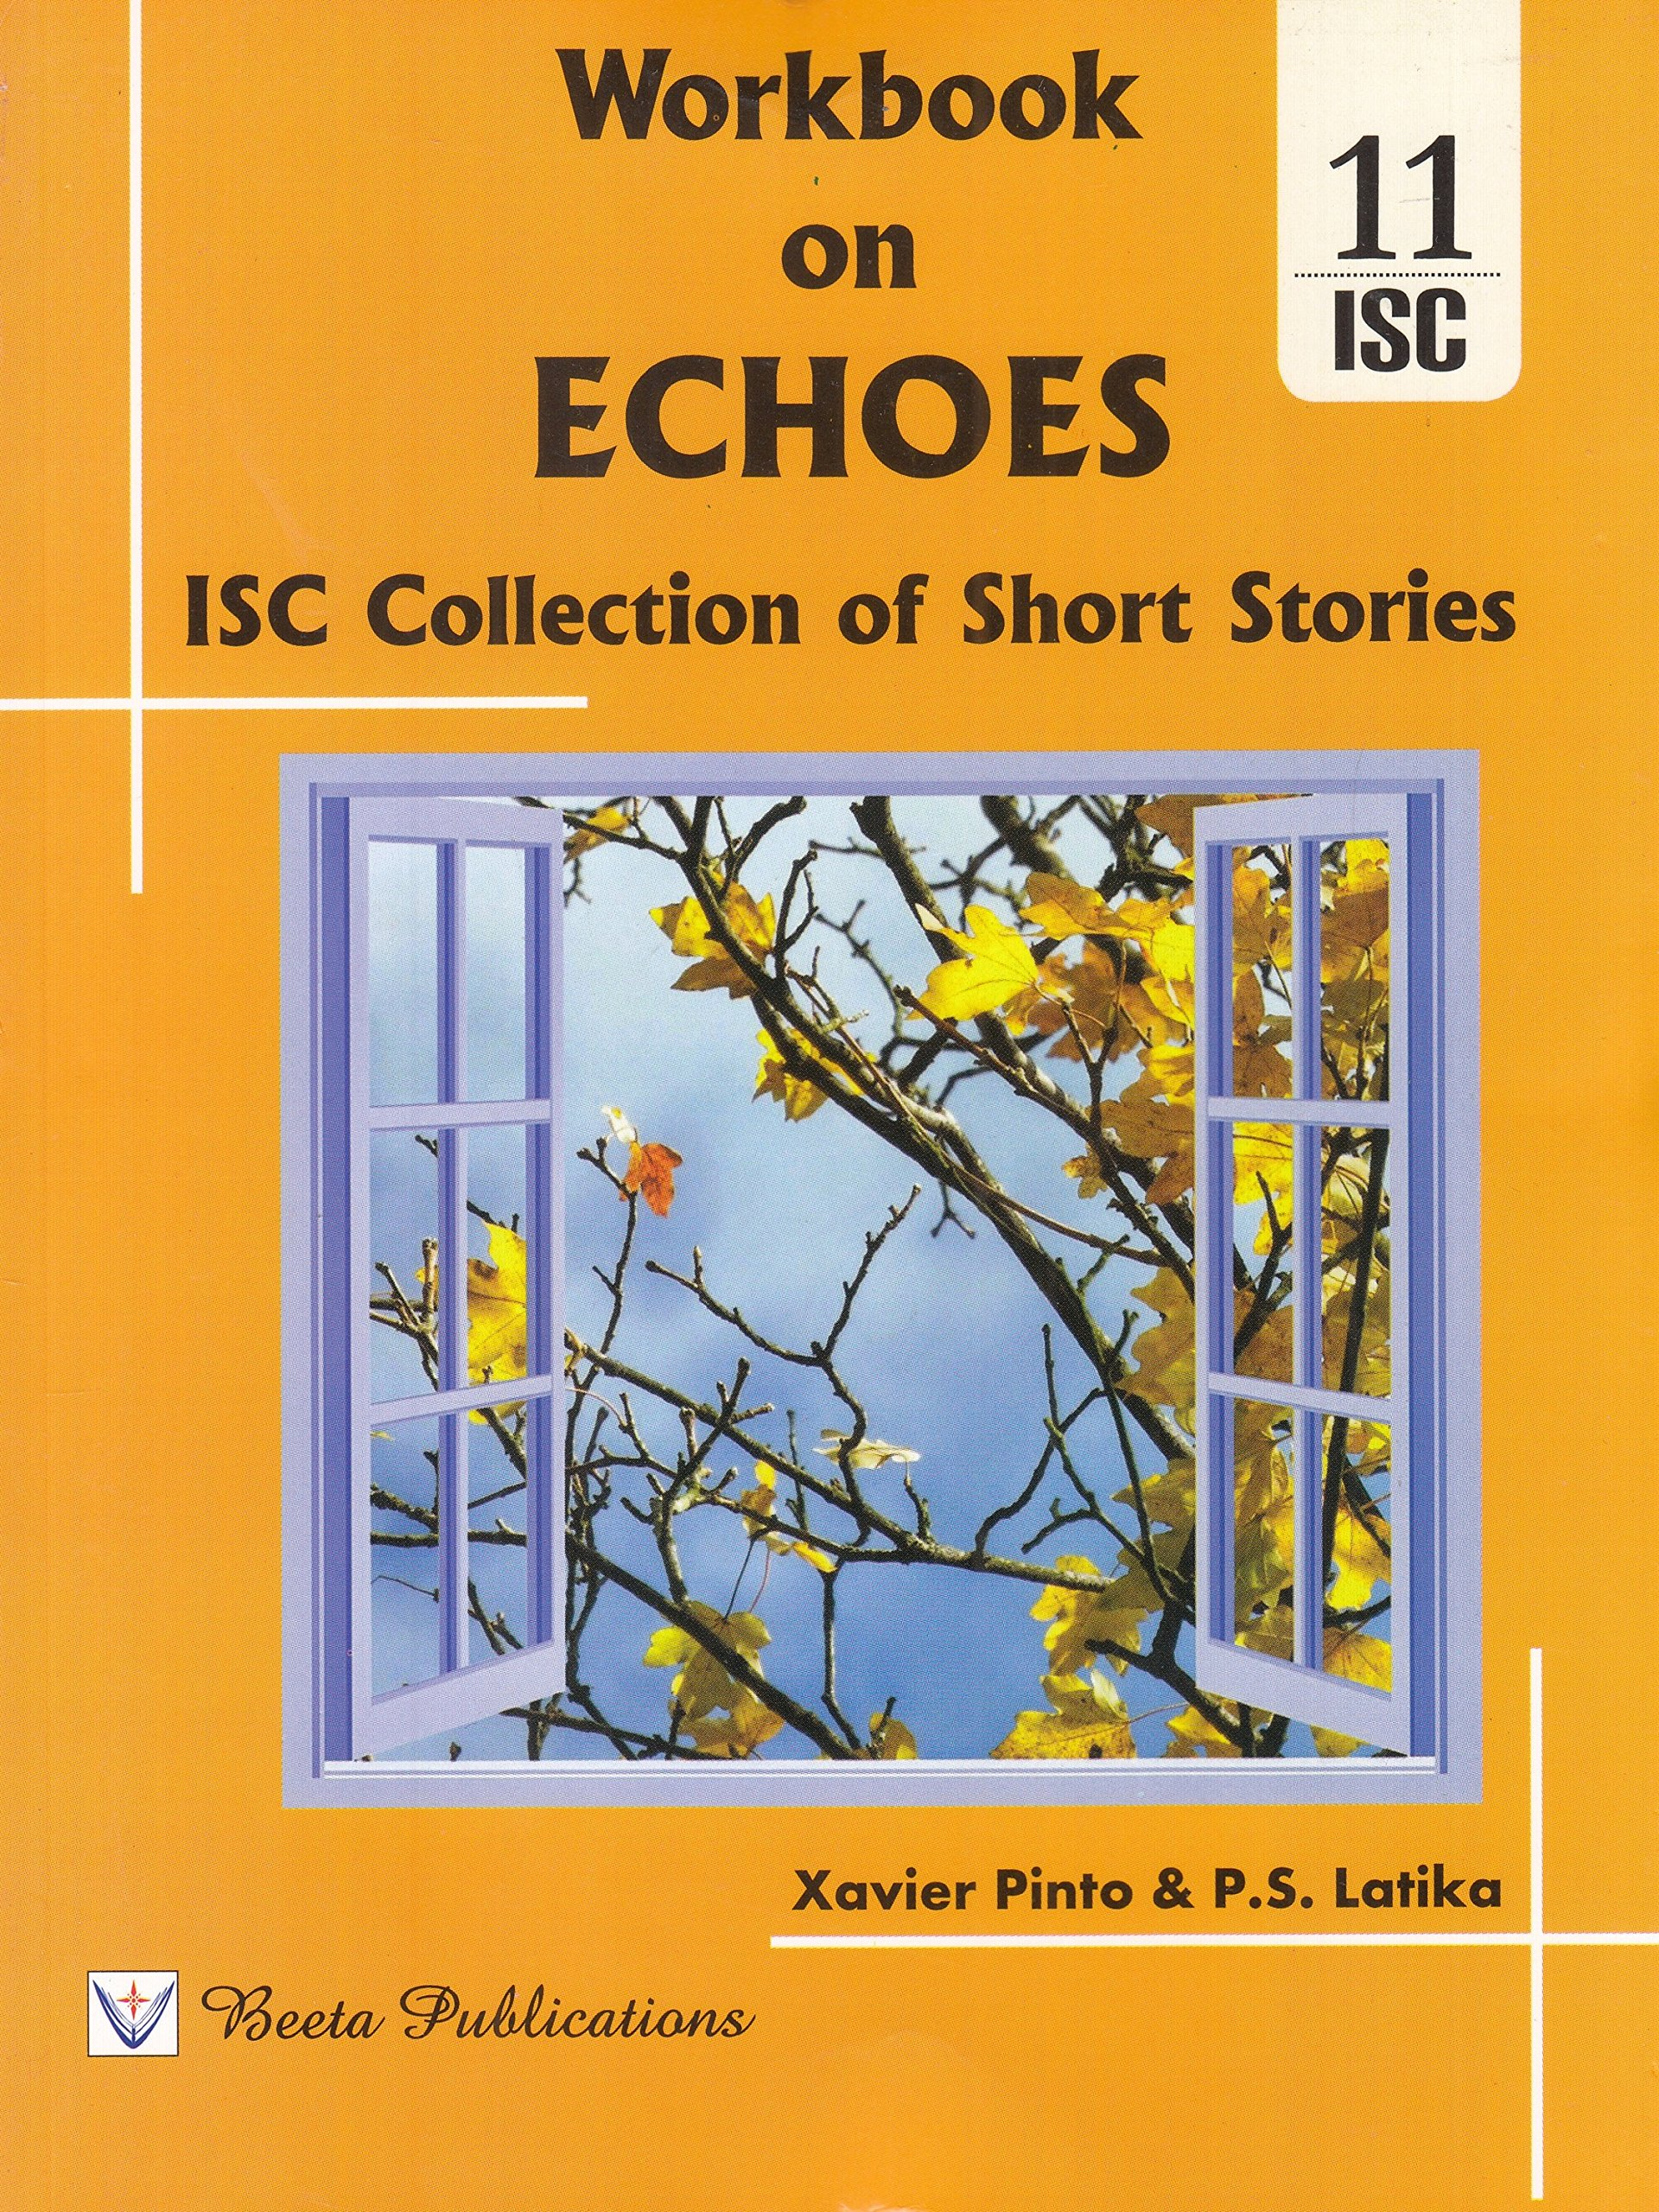 Amazon.in: Buy Workbook on Echoes ISC Collection of Short Stories Book  Online at Low Prices in India | Workbook on Echoes ISC Collection of Short  Stories ...